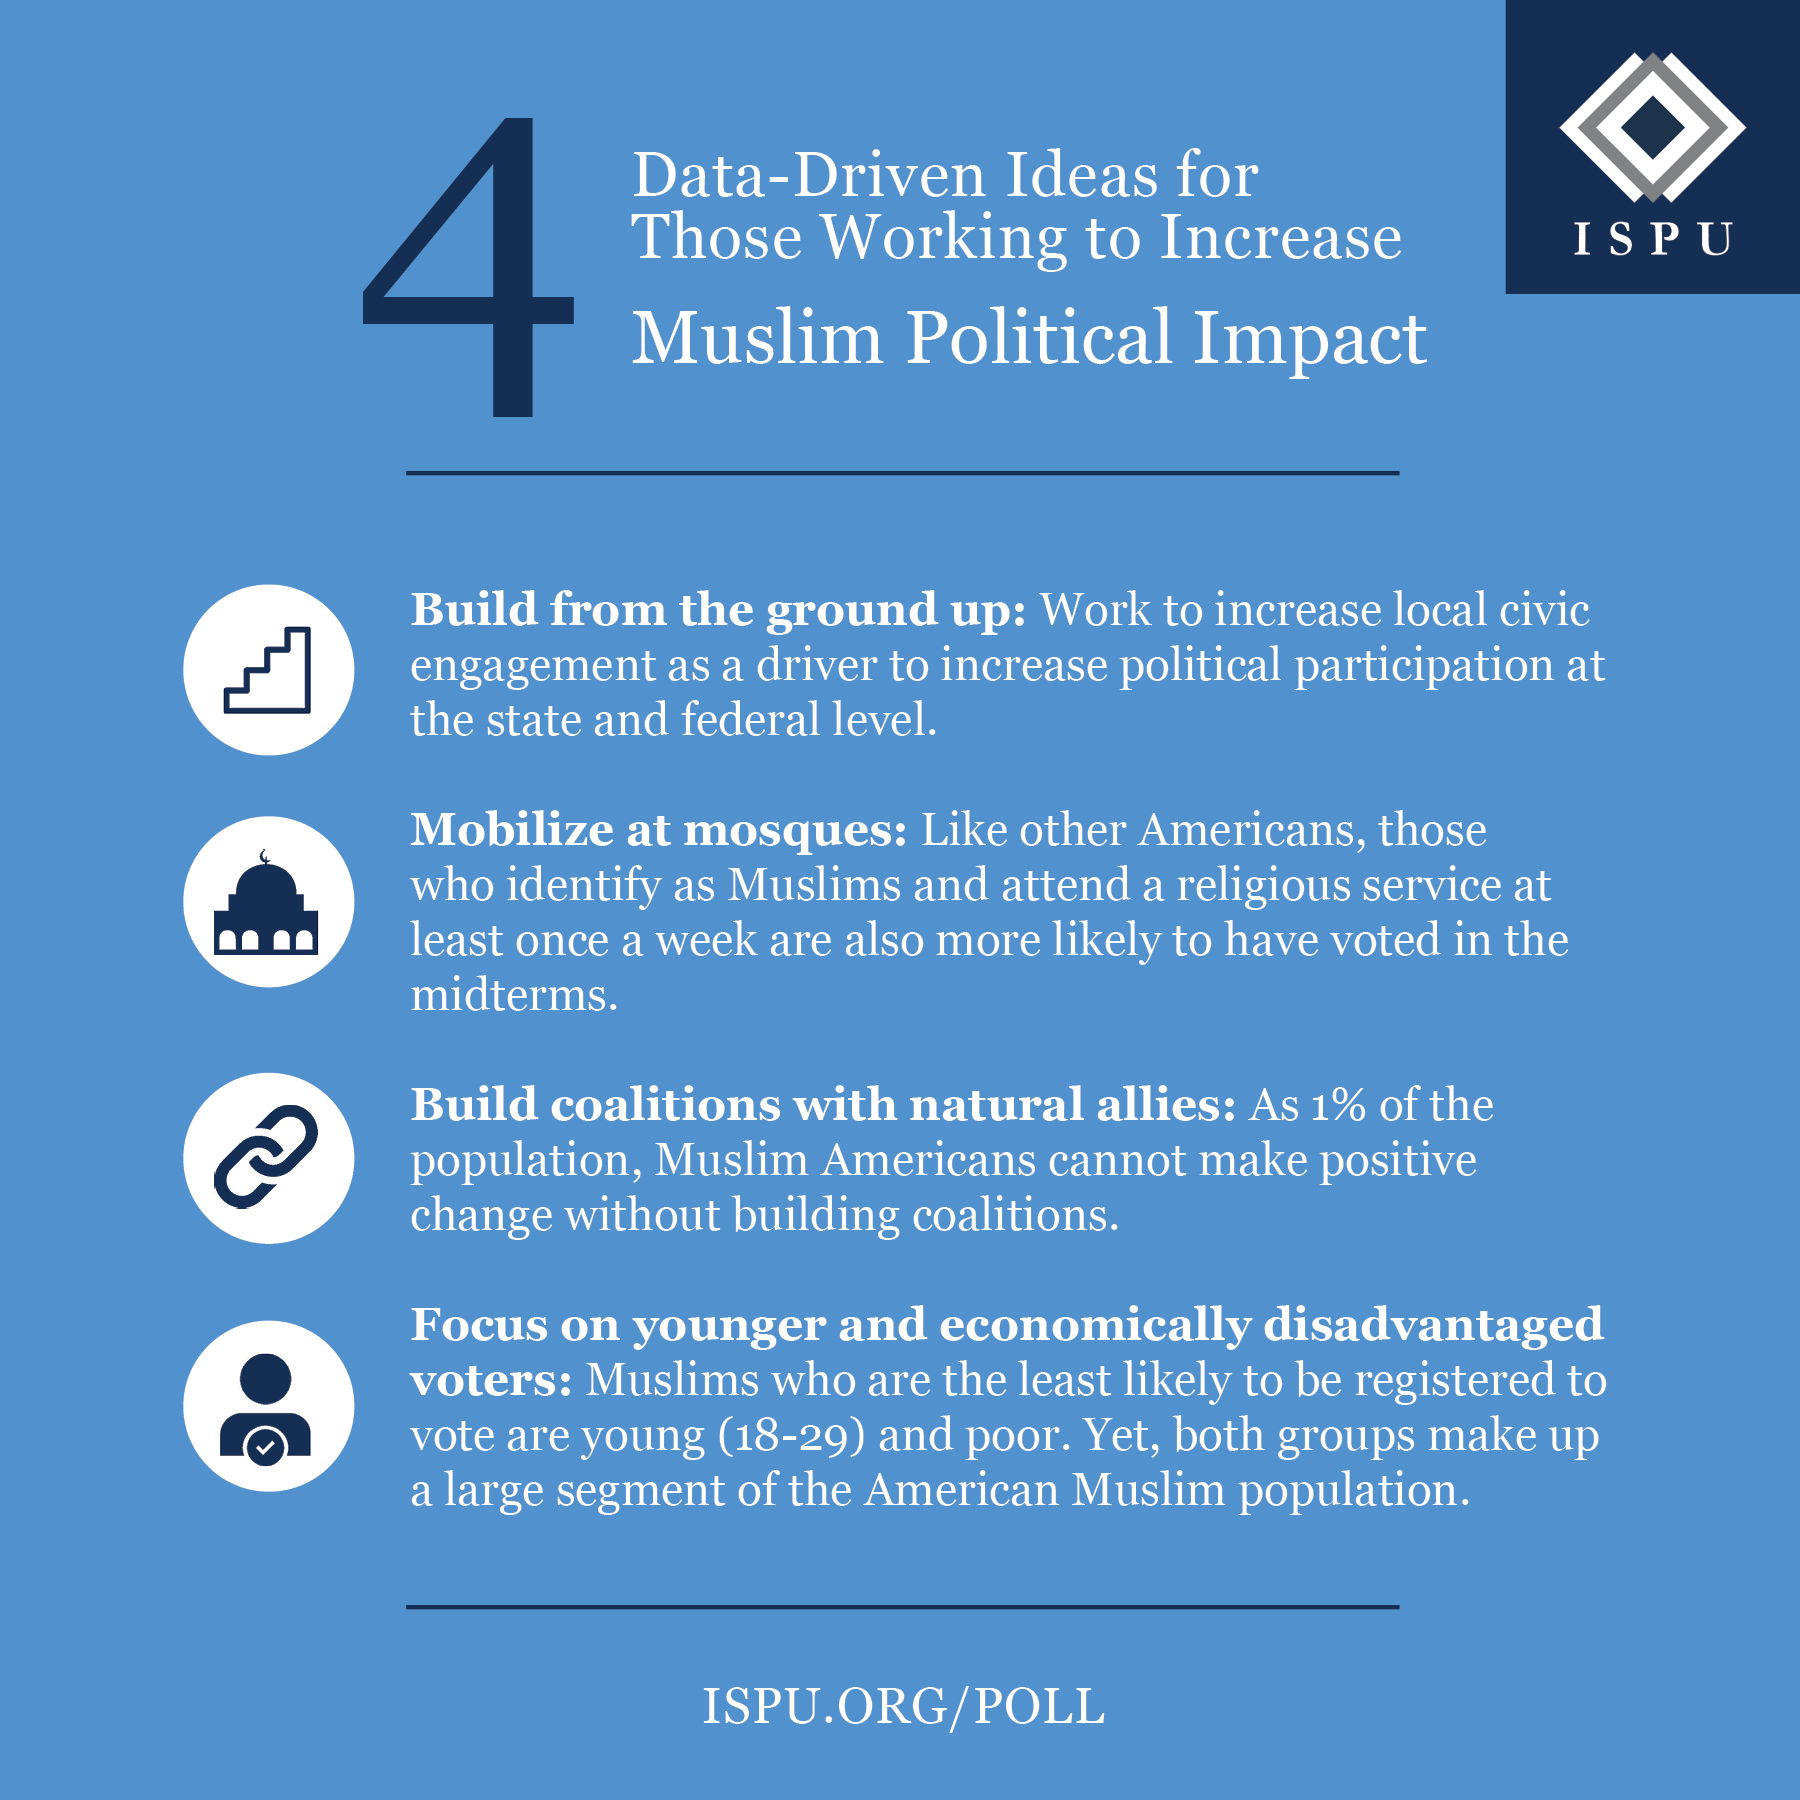 Infographic showing 4 data-driven ideas for those working to increase Muslim political impact